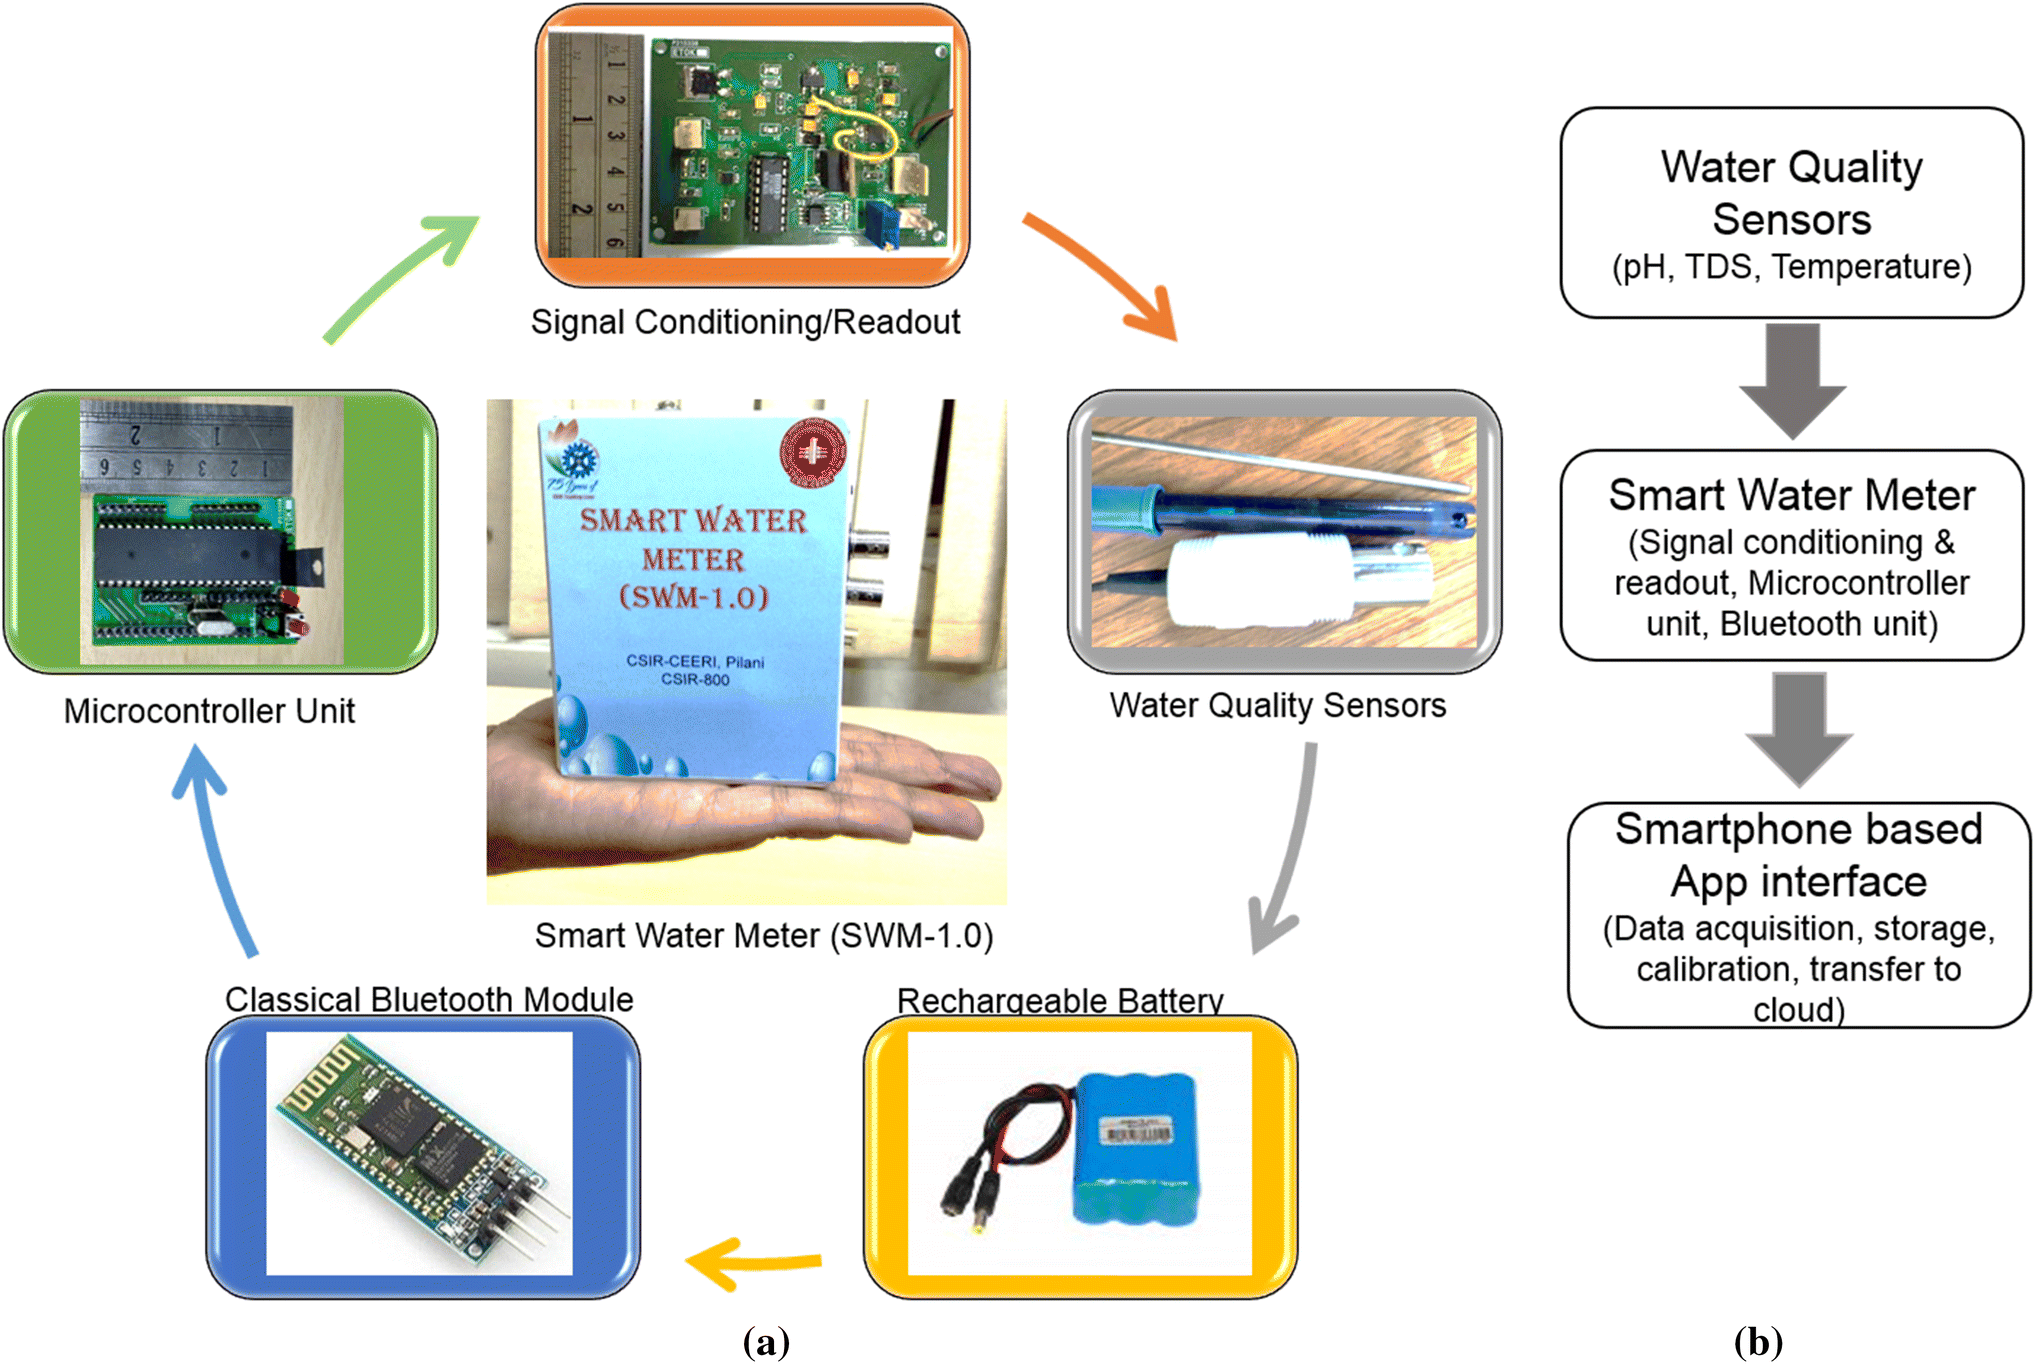 Smartphone-based System for water quality analysis